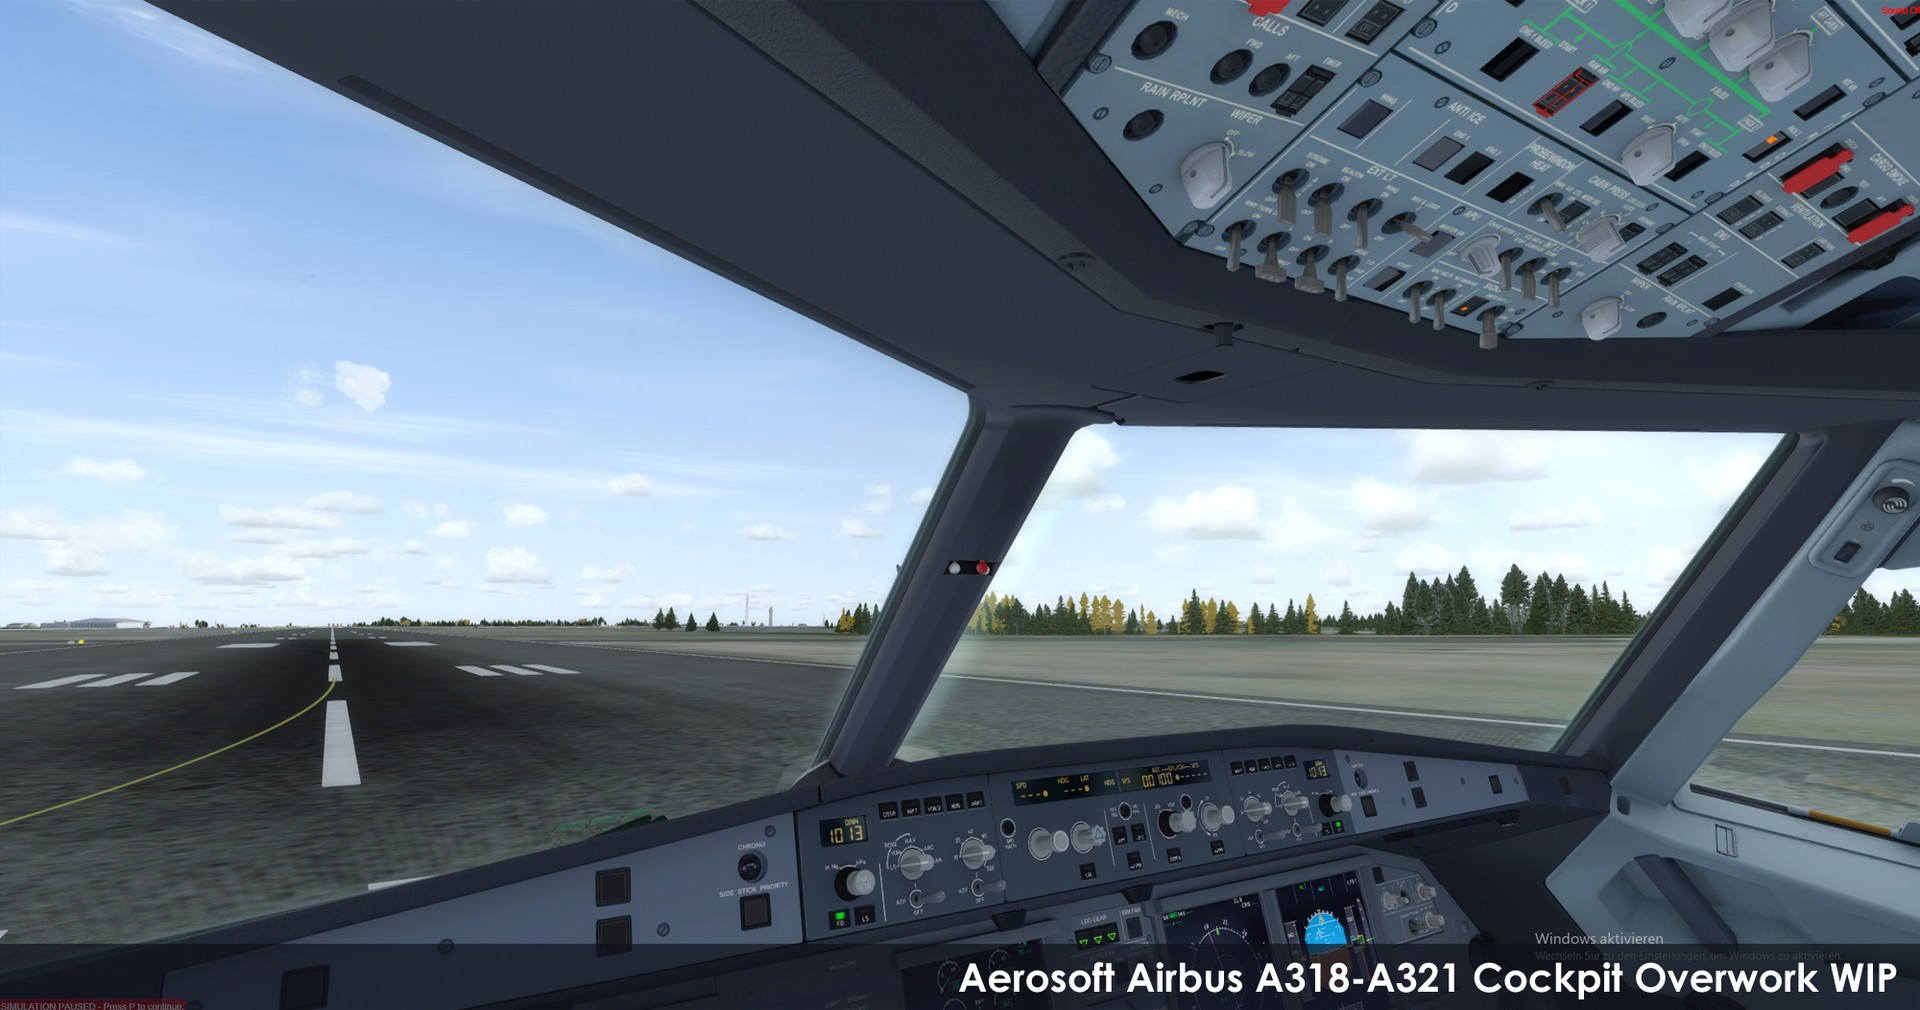 Update: 29 Sept '17 – Aerosoft Airbus 2018 Edition Previews